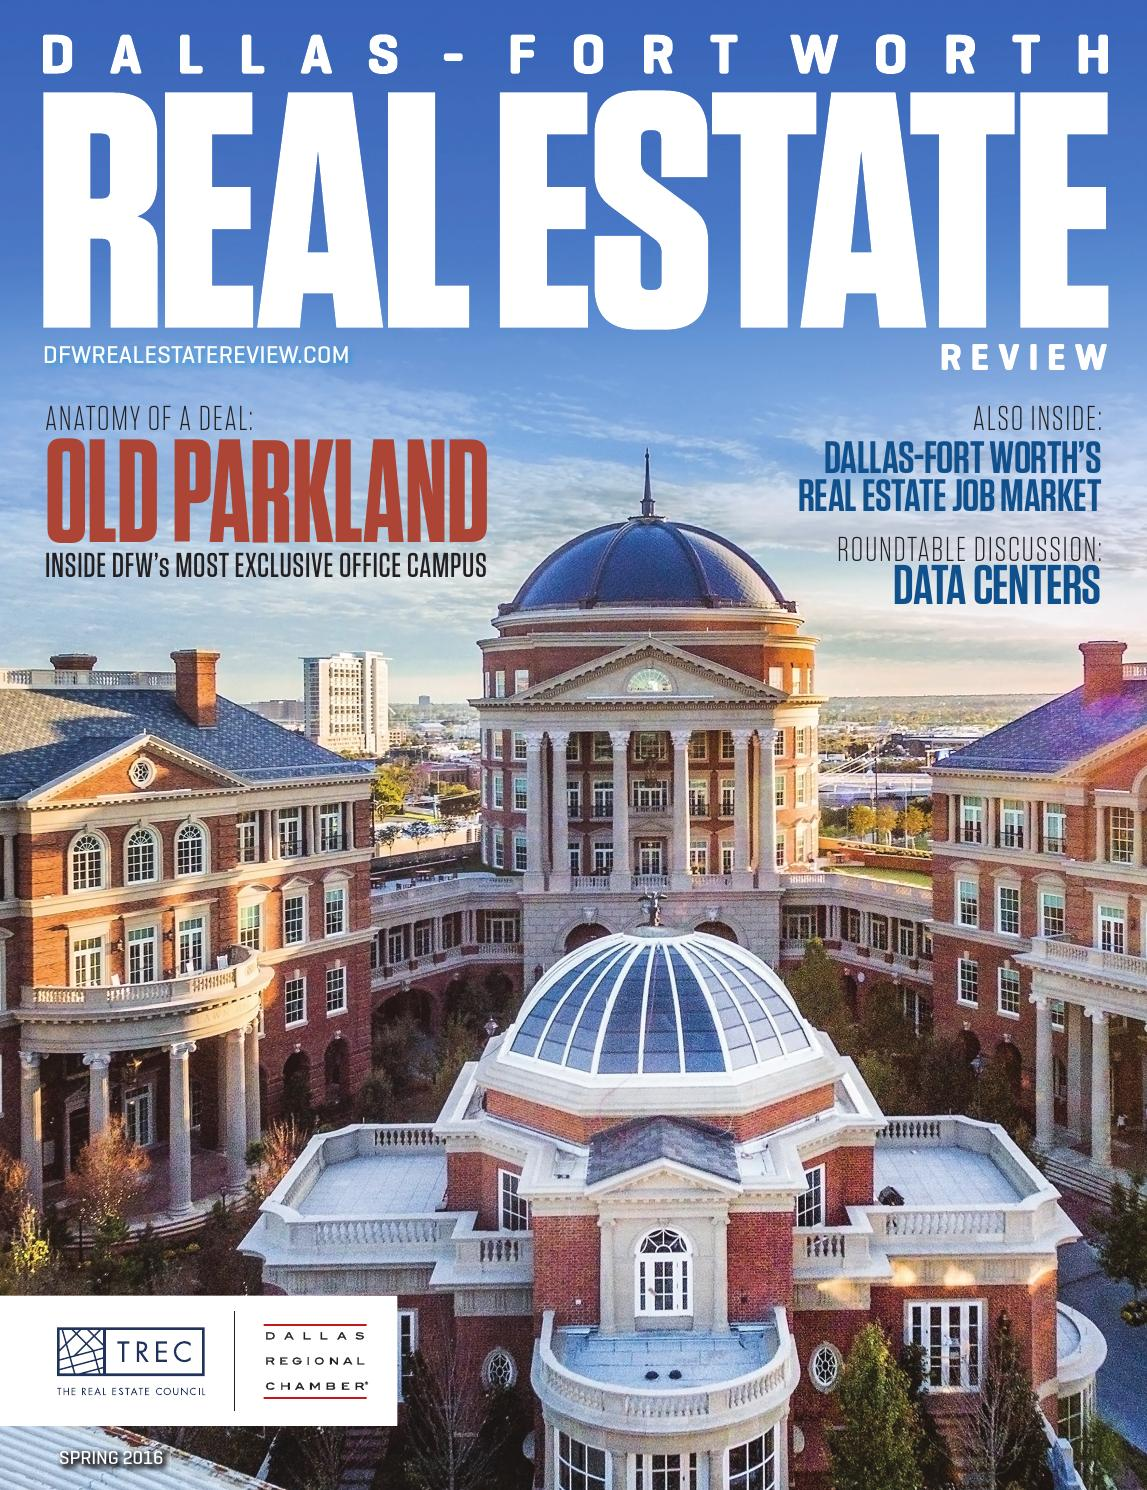 Dallas fort worth real estate review summer 2015 by dallas dallas fort worth real estate review spring 2016 malvernweather Gallery